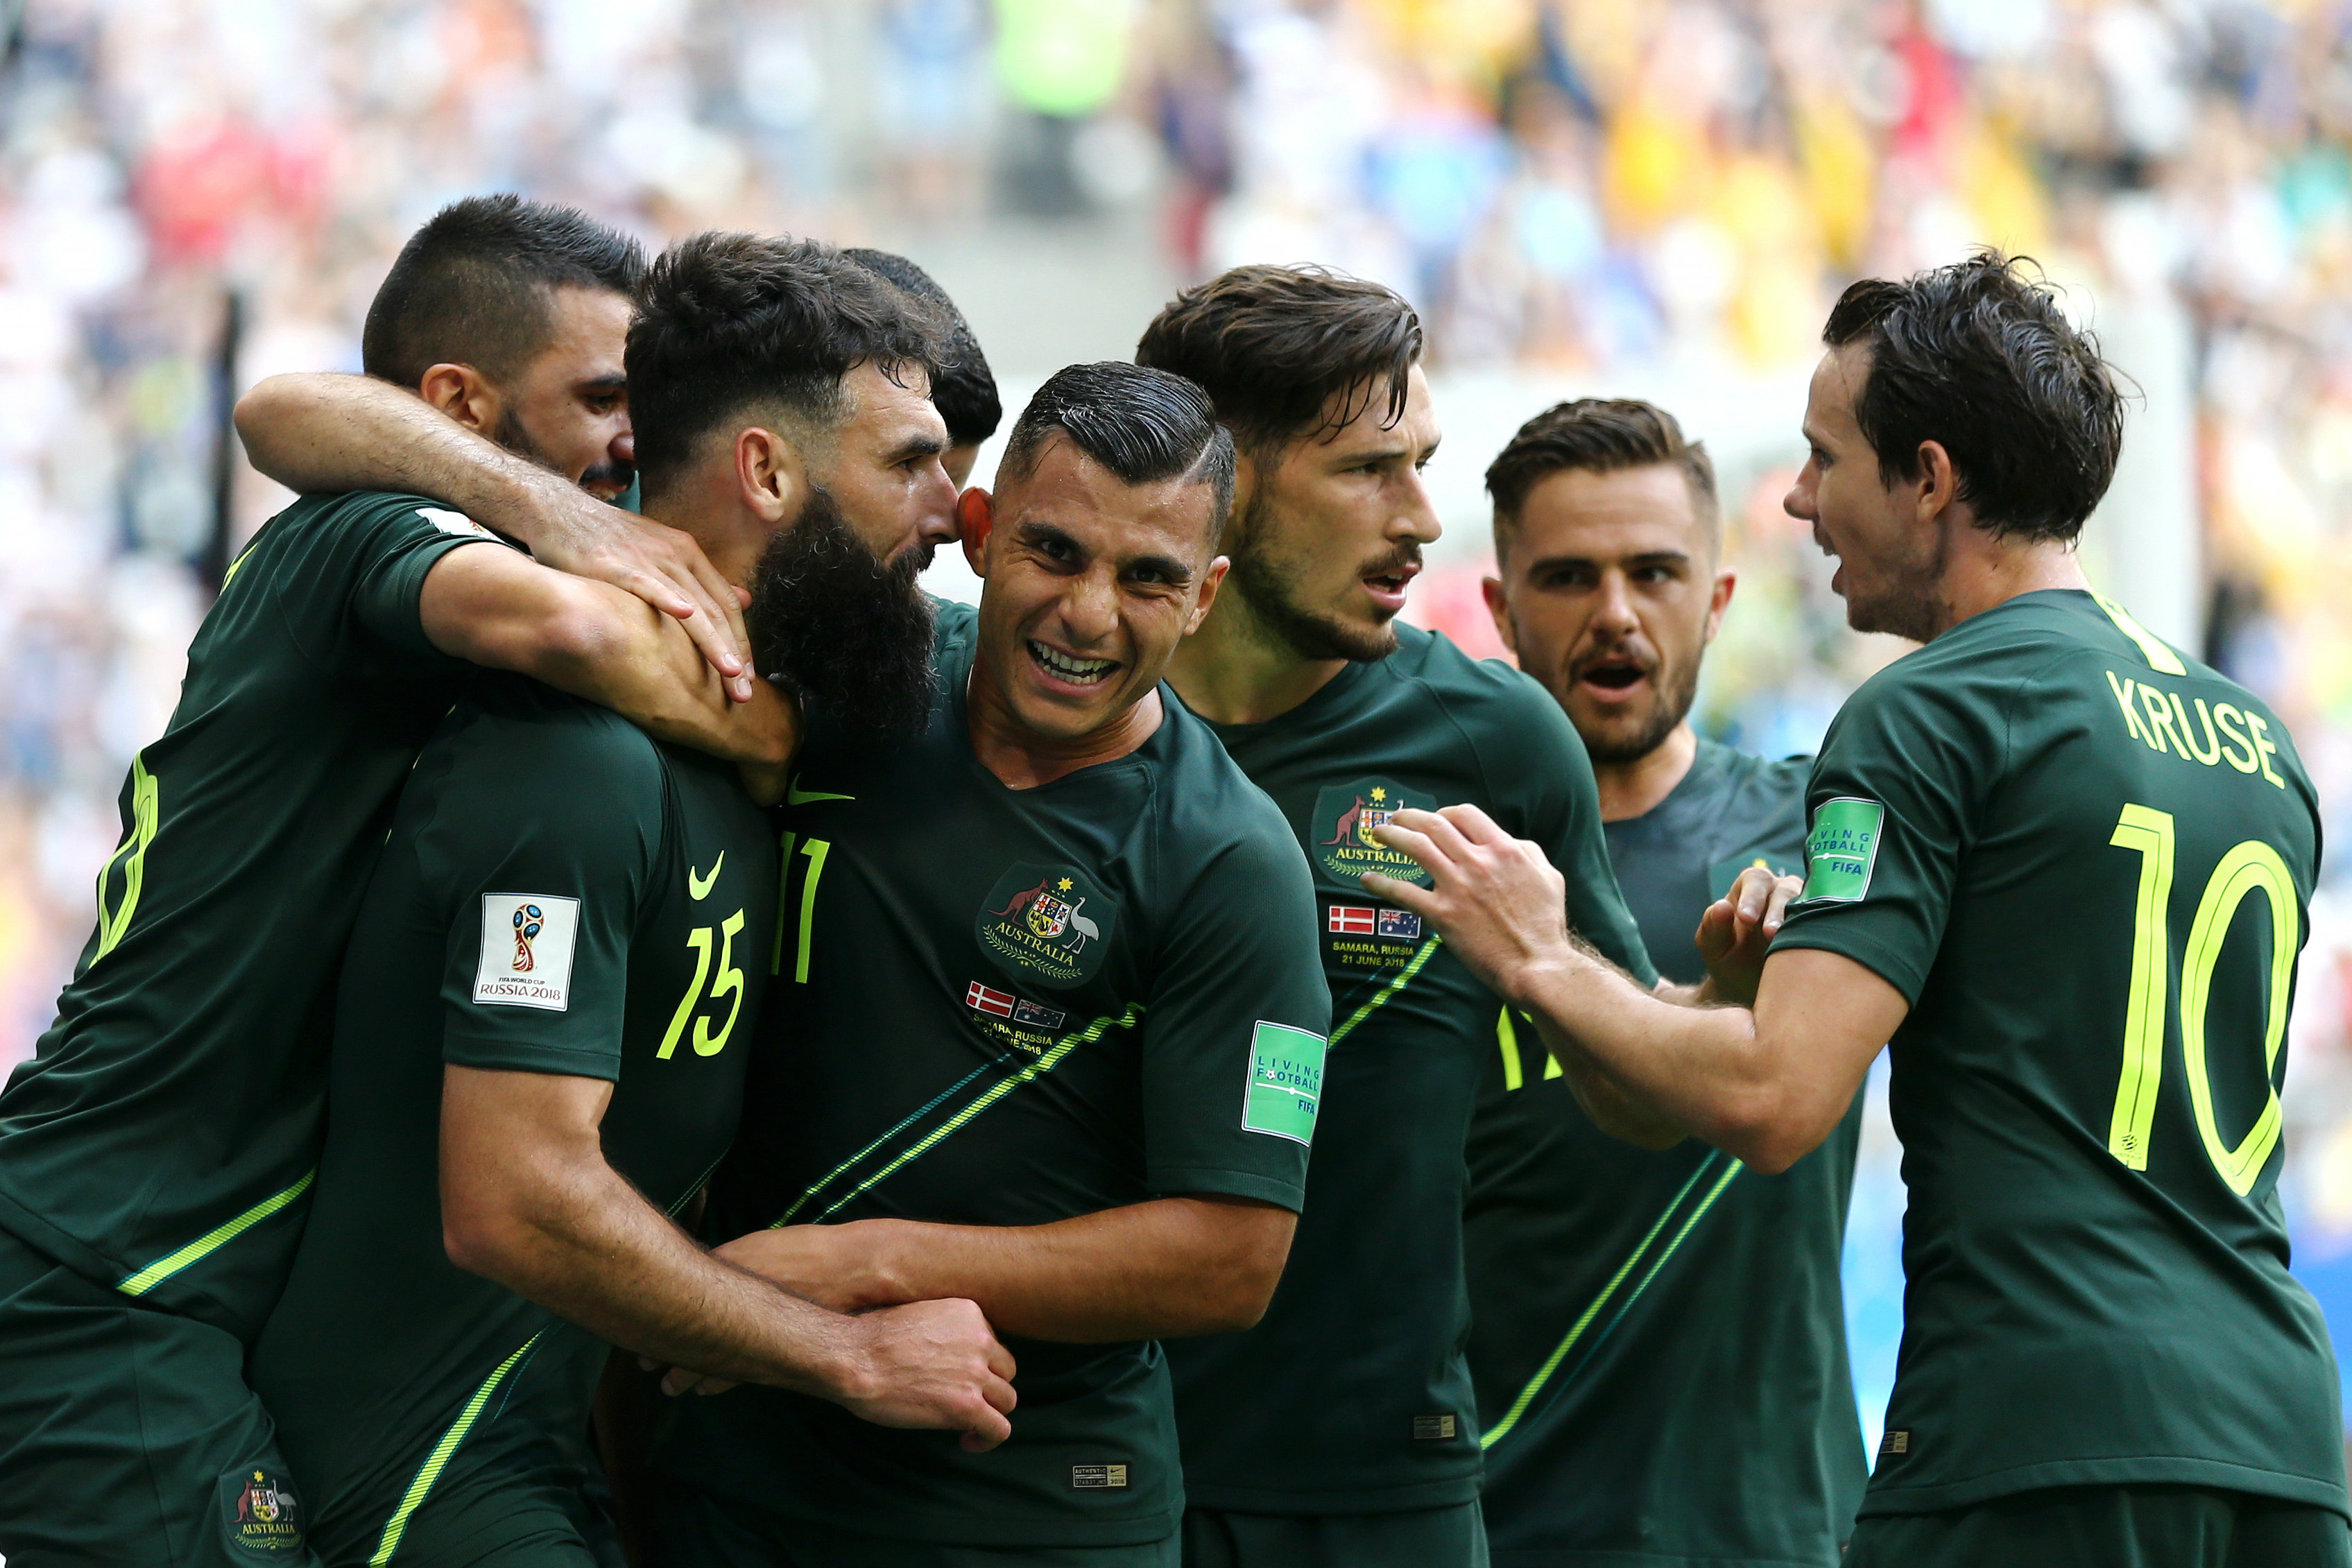 Australian players get around Mile Jedinak after his goal.